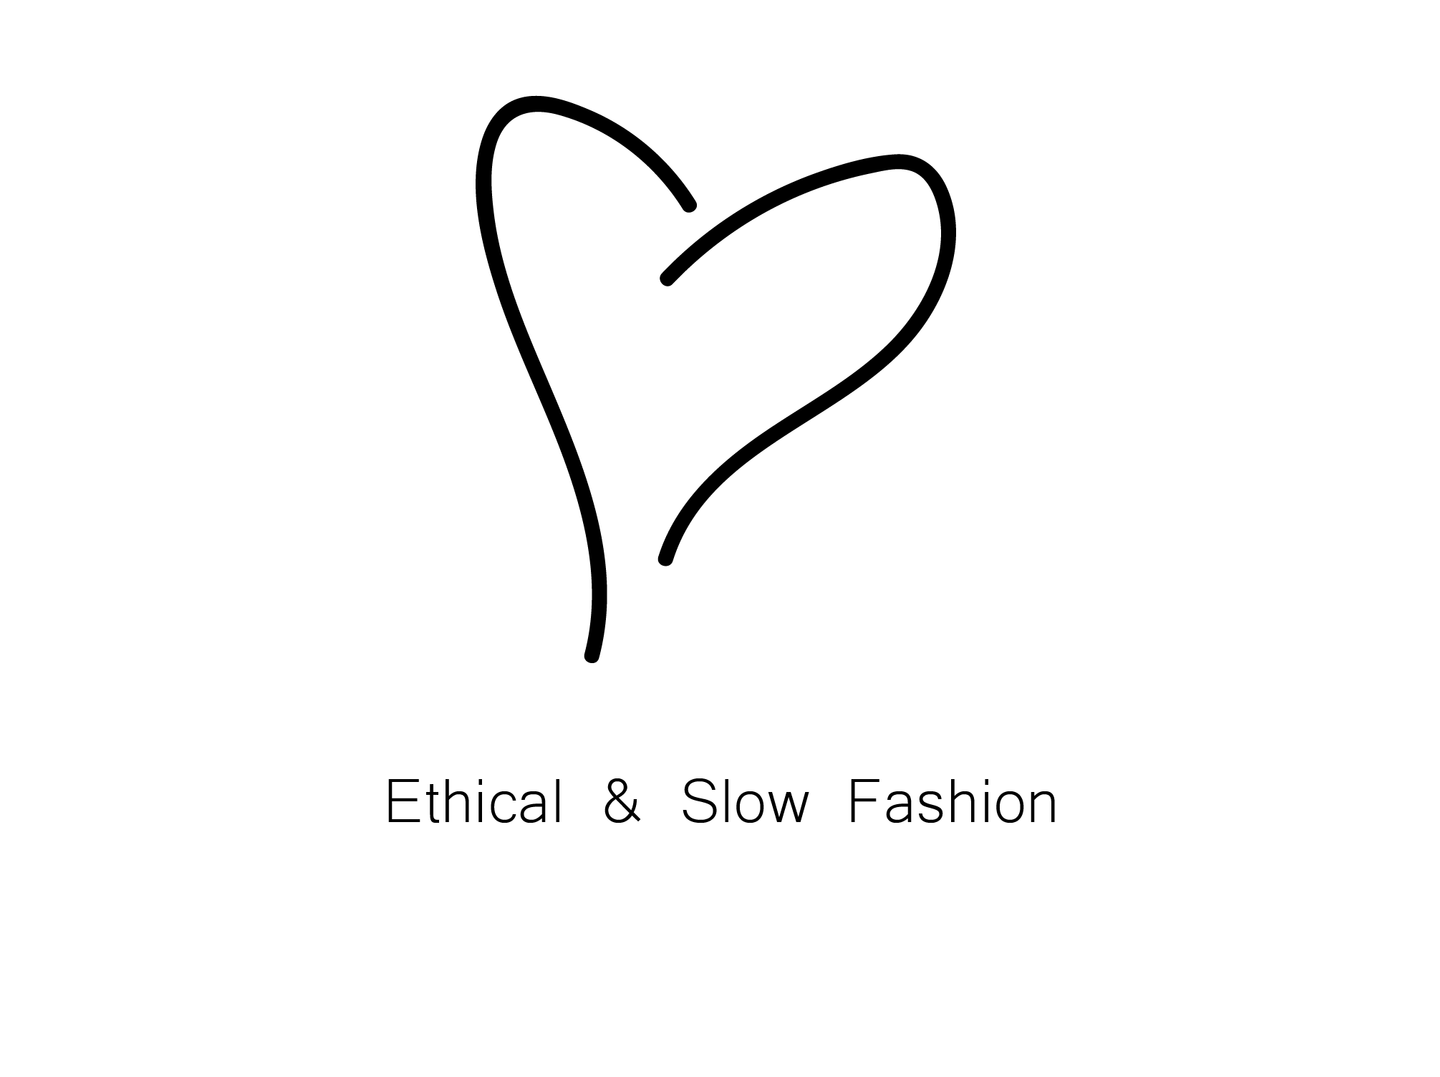 Ethical & Slow Fashion